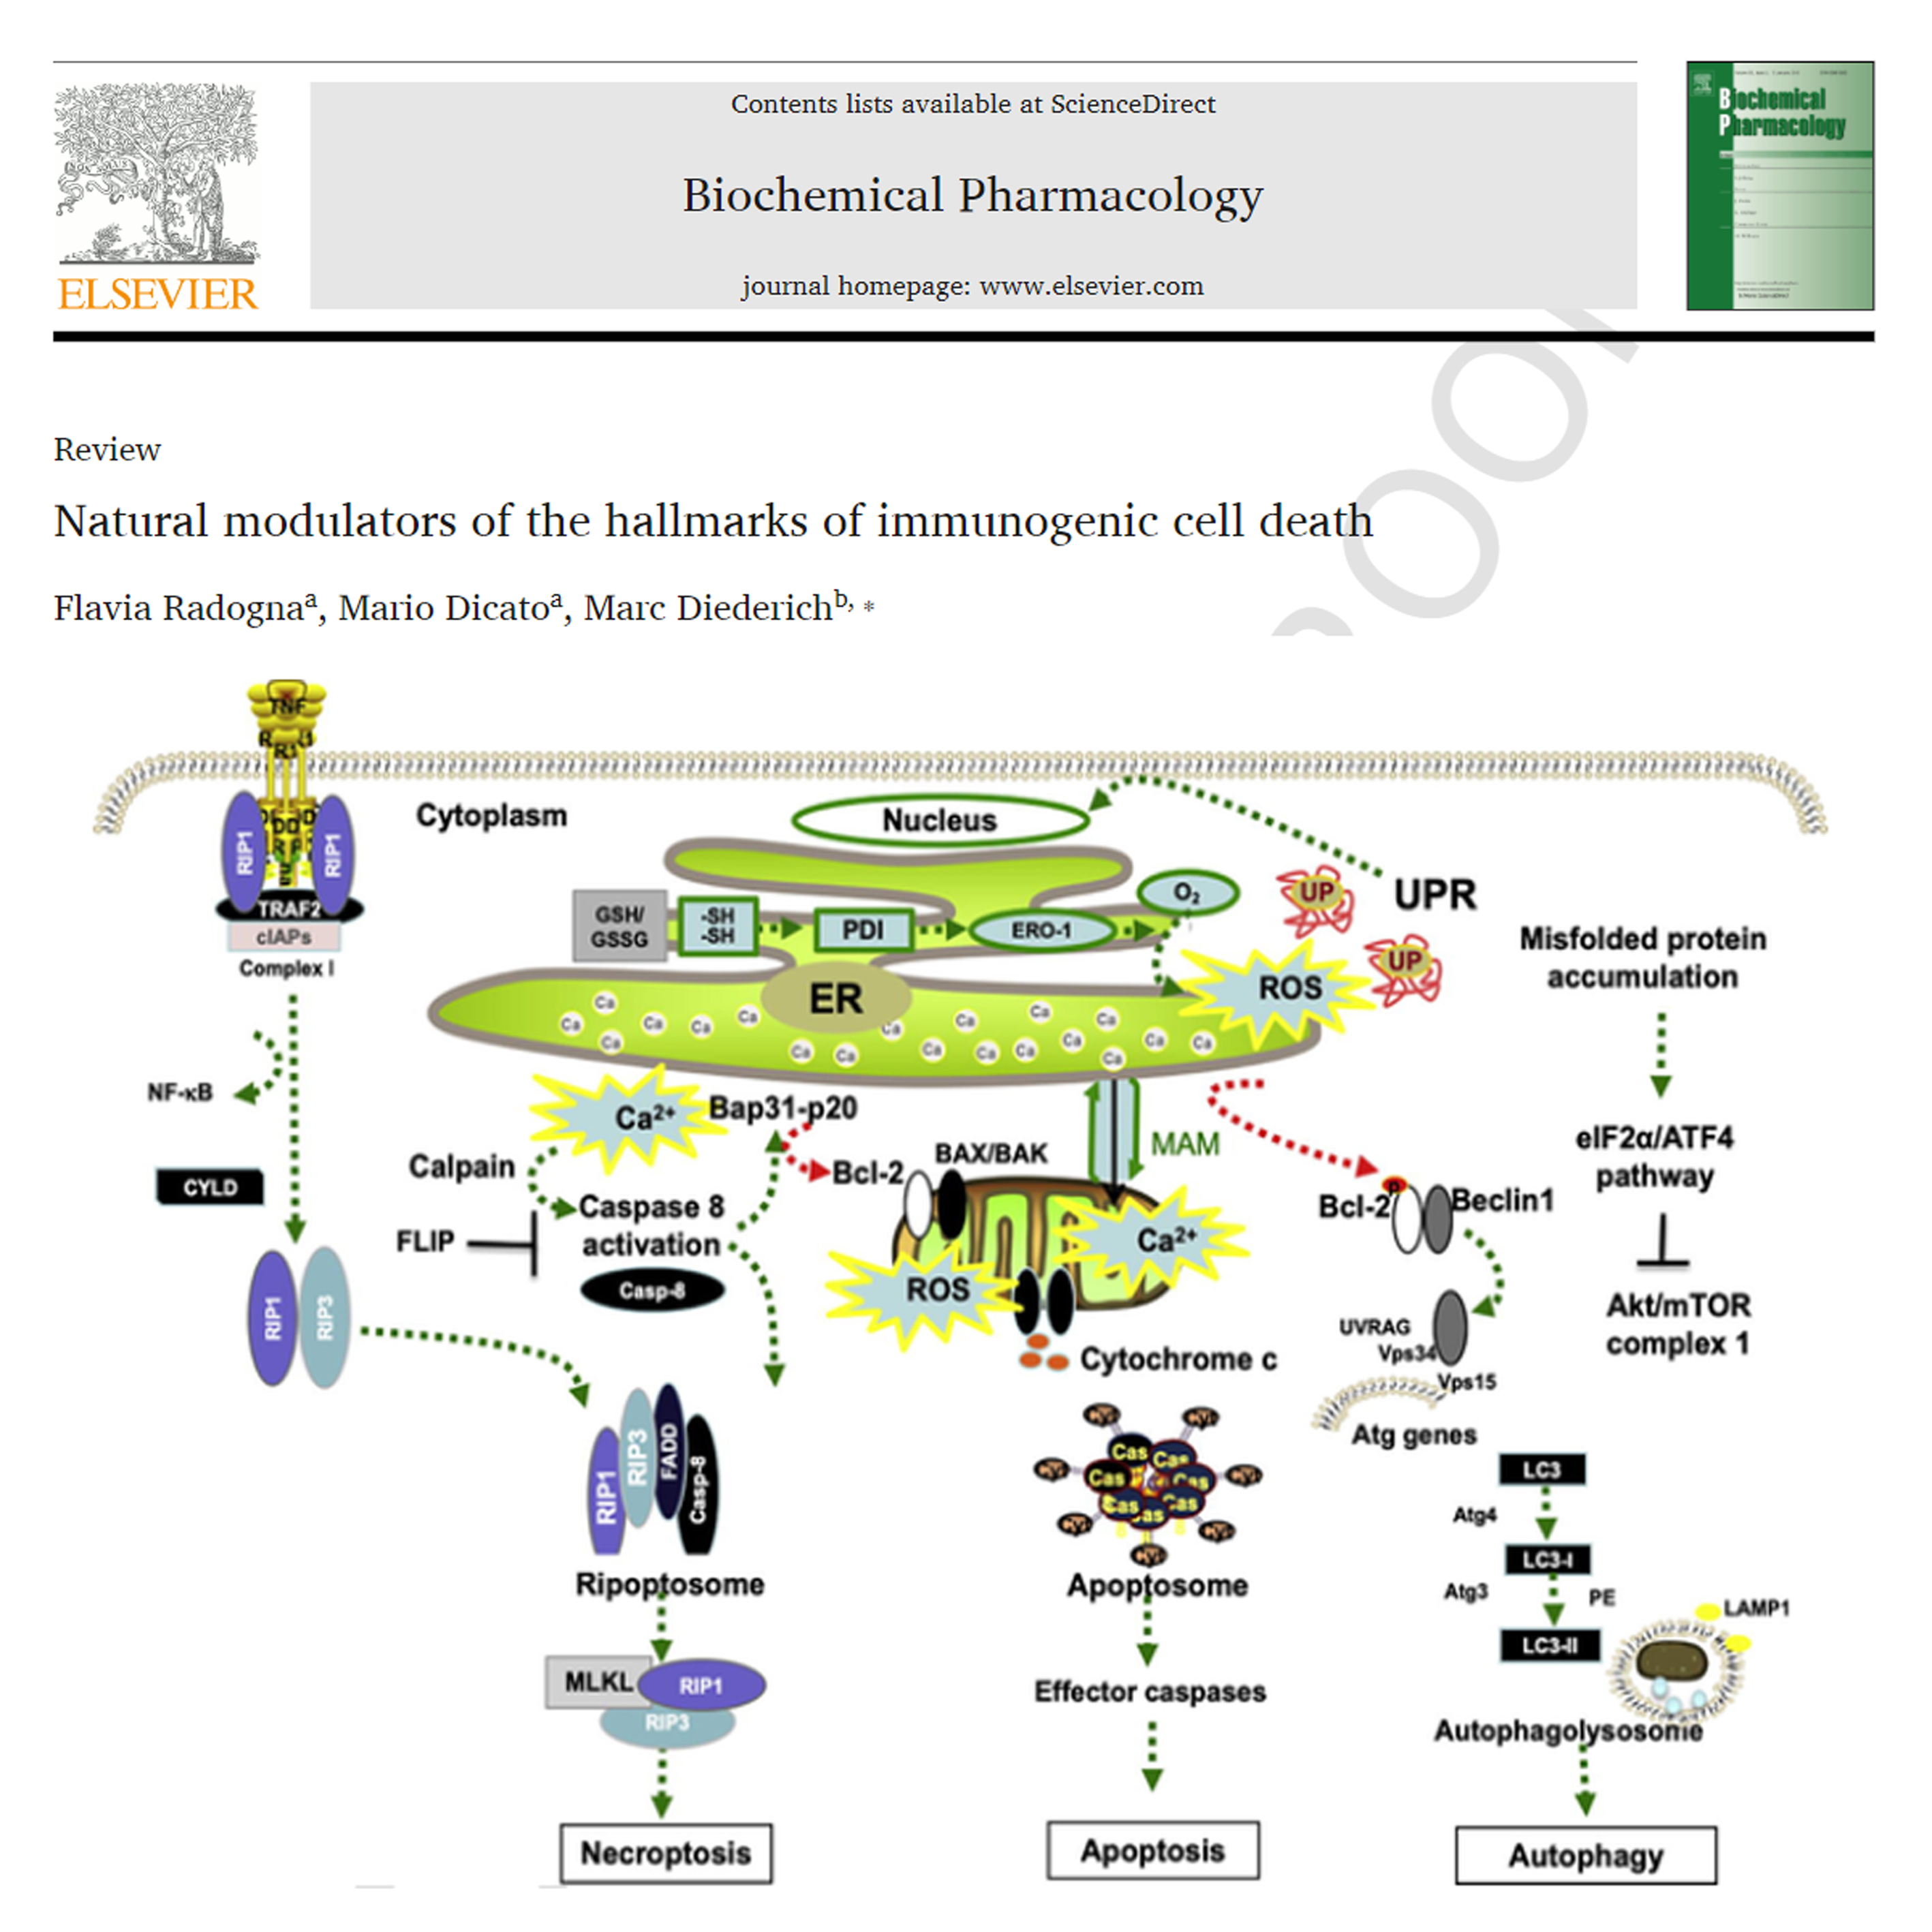 Natural modulators of the hallmarks of immunogenic cell death